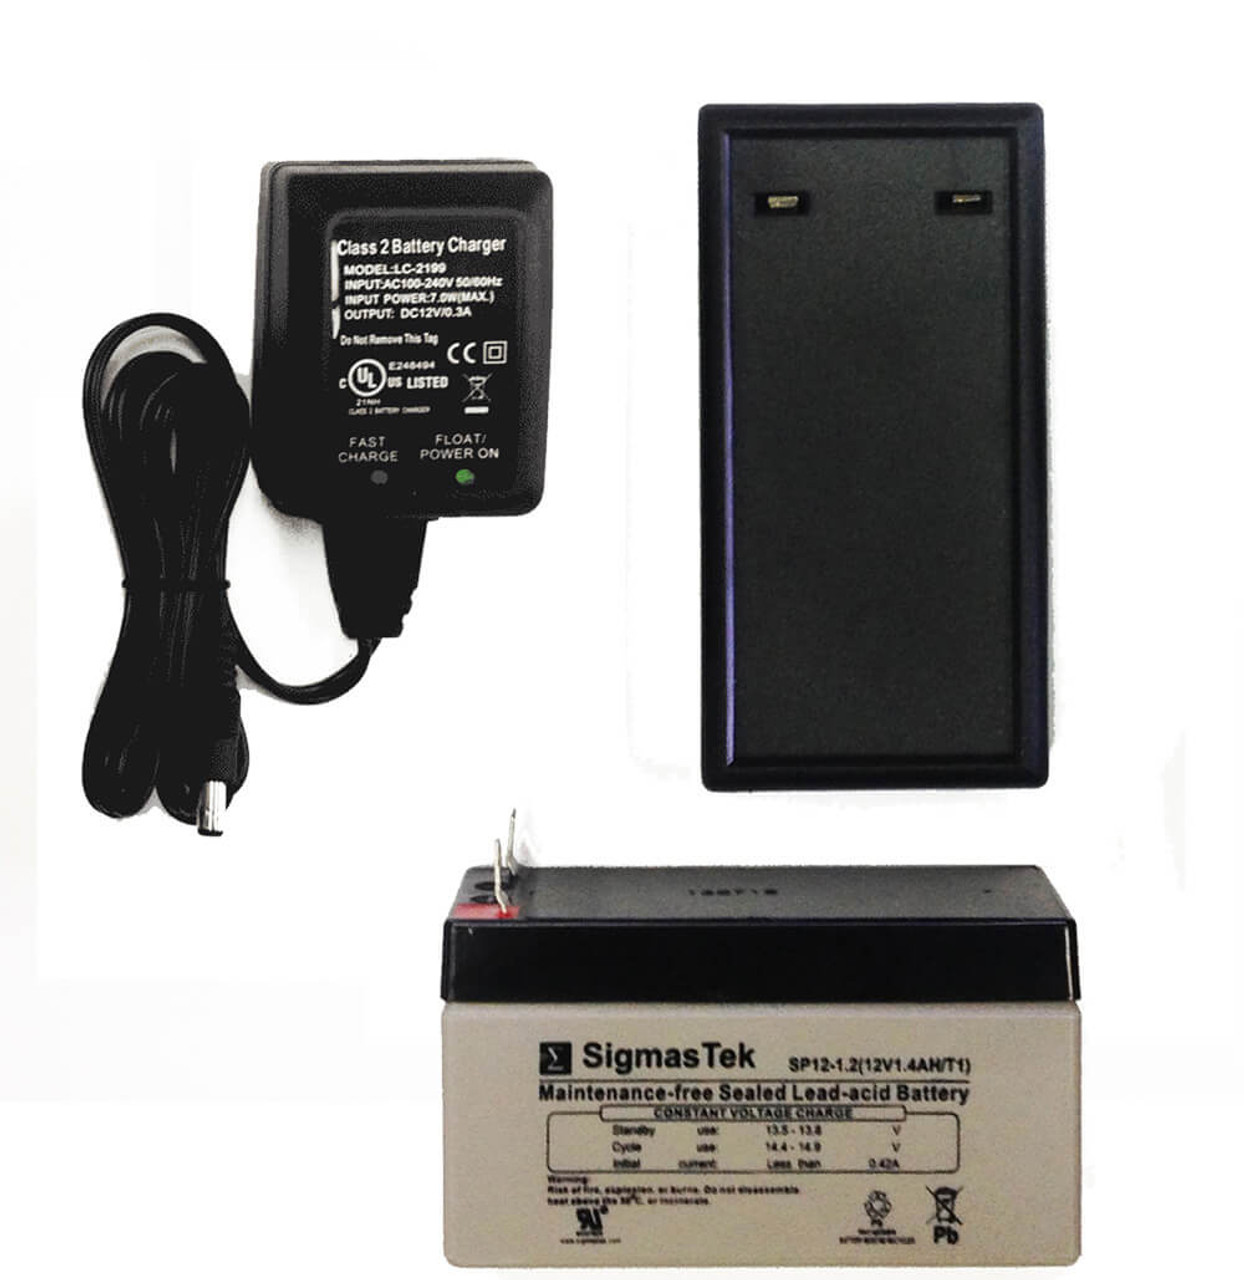 Attirant High Tech Electronic Pet Doors Can Use This Battery Backup So That If The  Power Goes